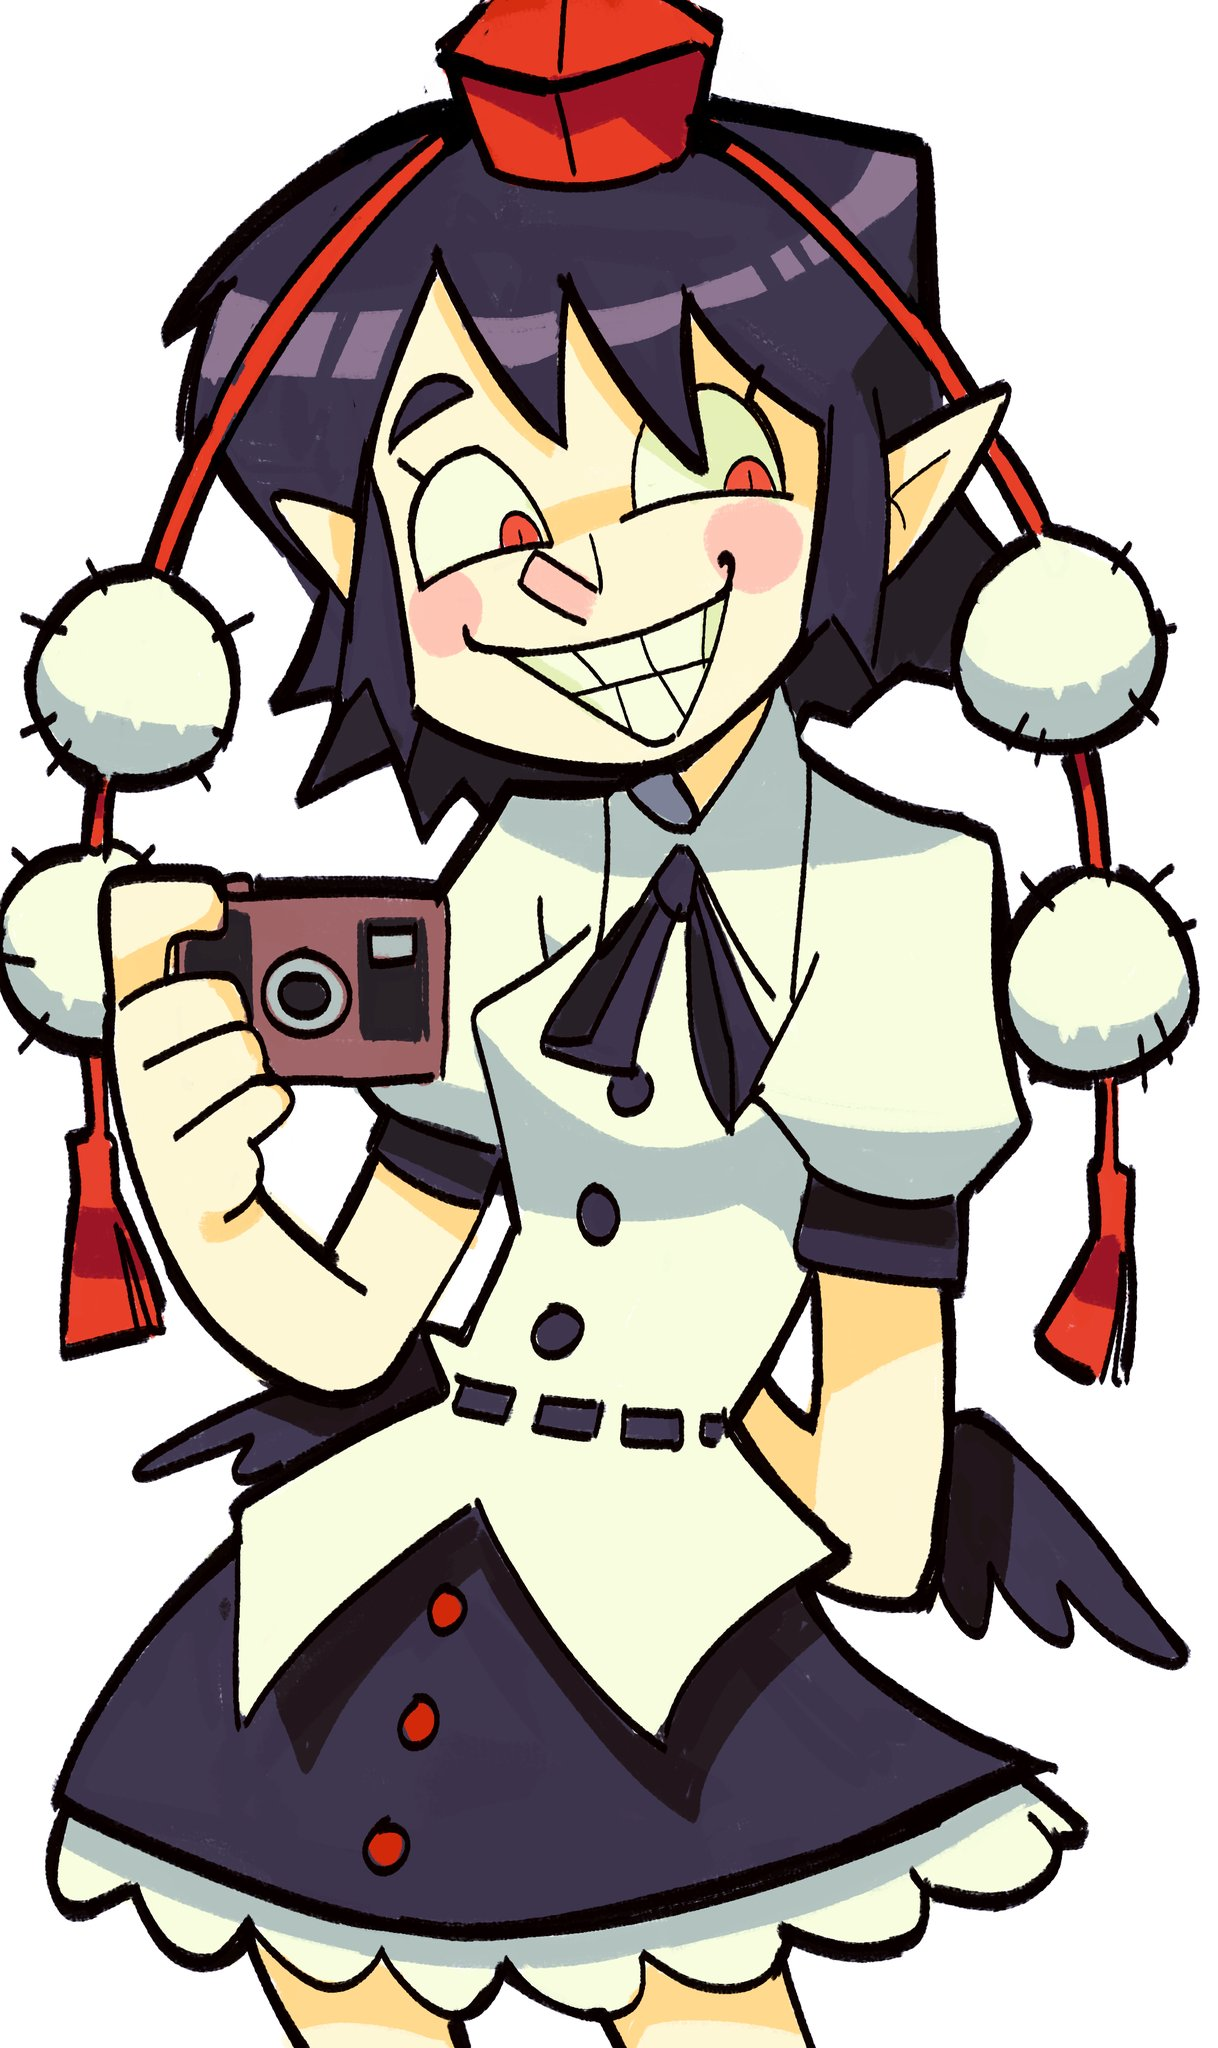 1girl arm_behind_back bangs black_hair black_neckwear black_wings blush_stickers breasts buttons camera commentary cowboy_shot frilled_skirt frills grin hair_over_one_eye hat highres holding holding_camera legs_apart looking_away low_wings neck_ribbon pointy_ears pom_pom_(clothes) puffy_short_sleeves puffy_sleeves red_eyes red_headwear ribbon sh1tty2 shameimaru_aya shirt short_hair short_sleeves simple_background skirt slit_pupils smile solo symbol_commentary teeth thick_eyebrows tokin_hat touhou white_background wings